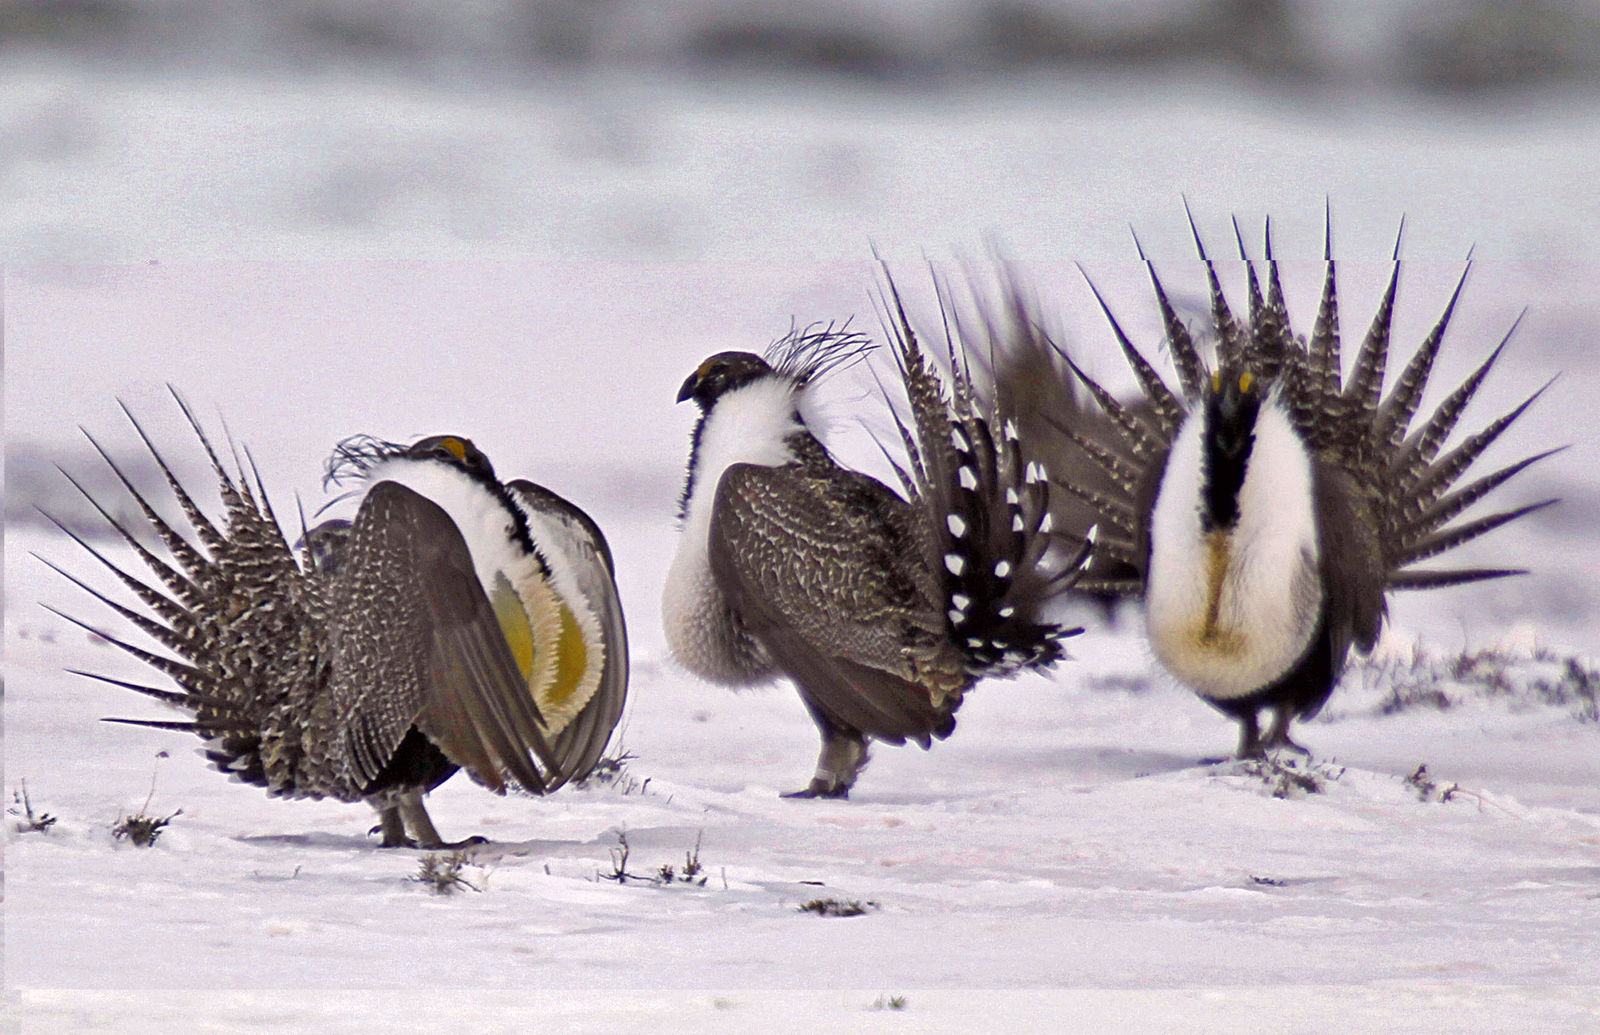 FILE - In this April 20, 2013 file photo, male greater sage grouse perform mating rituals for a female grouse, not pictured, on a lake outside Walden, Colo. The Trump administration is advancing plans to ease restrictions on oil and gas drilling and other activities on huge swaths of land in the American West that were put in place to protect an imperiled bird species. Land management plans released Thursday, Dec. 6, 2018, would open more areas to leasing and allow waivers for drilling pads to encroach into the bird's habitat. That would reverse protections for greater sage grouse enacted in 2015, under President Barack Obama. (AP Photo/David Zalubowski, File)